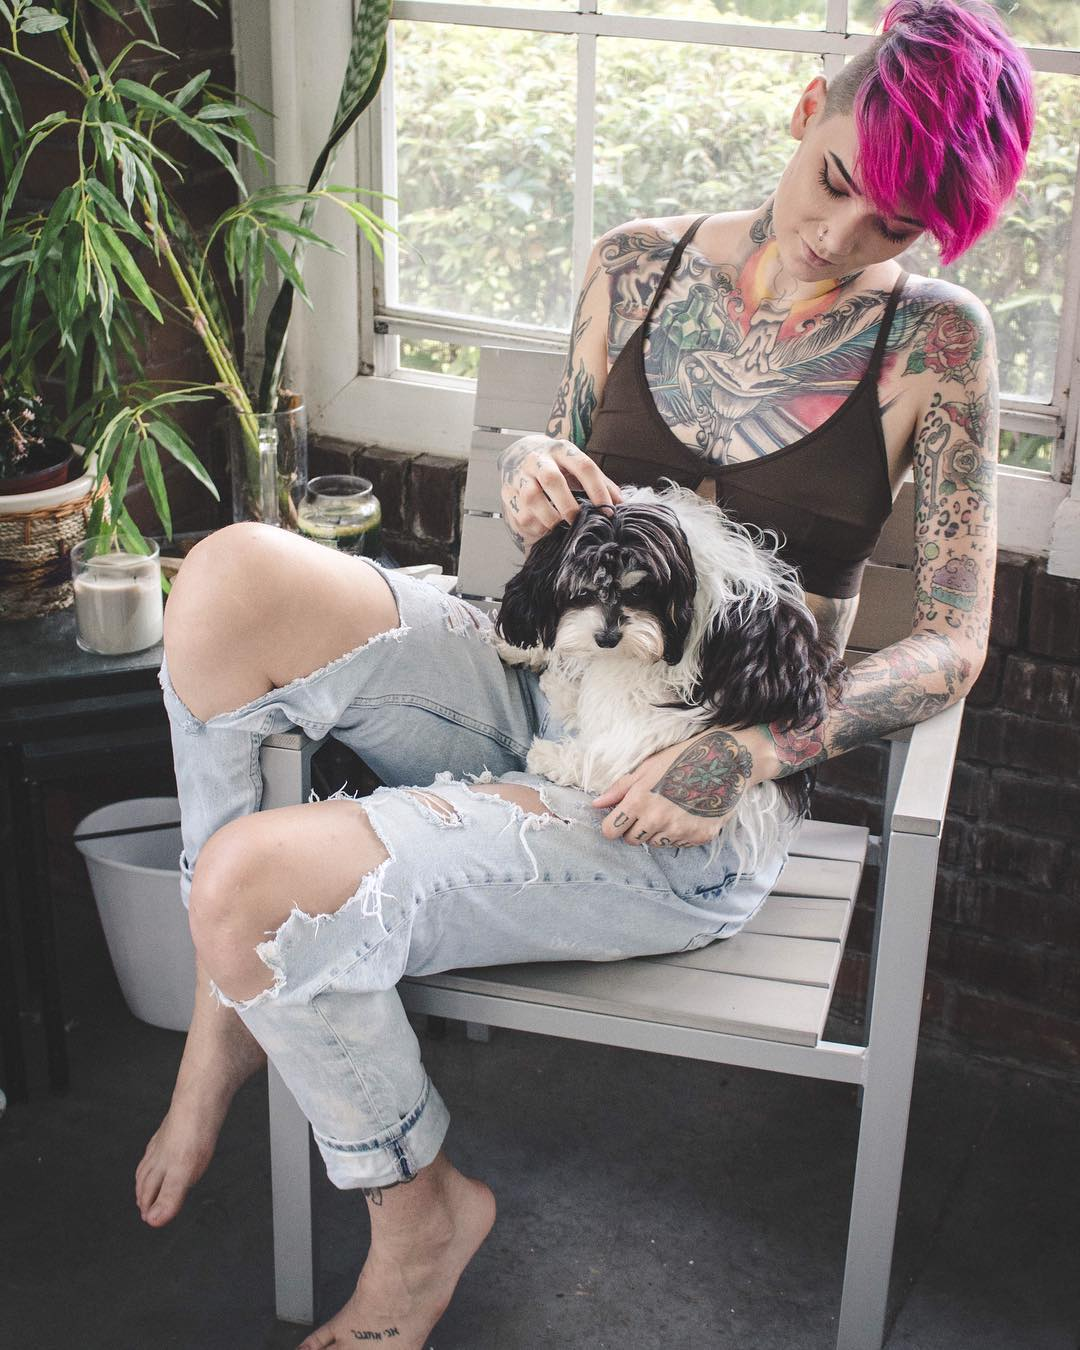 Wearing bralette sitting in a chair with a dog